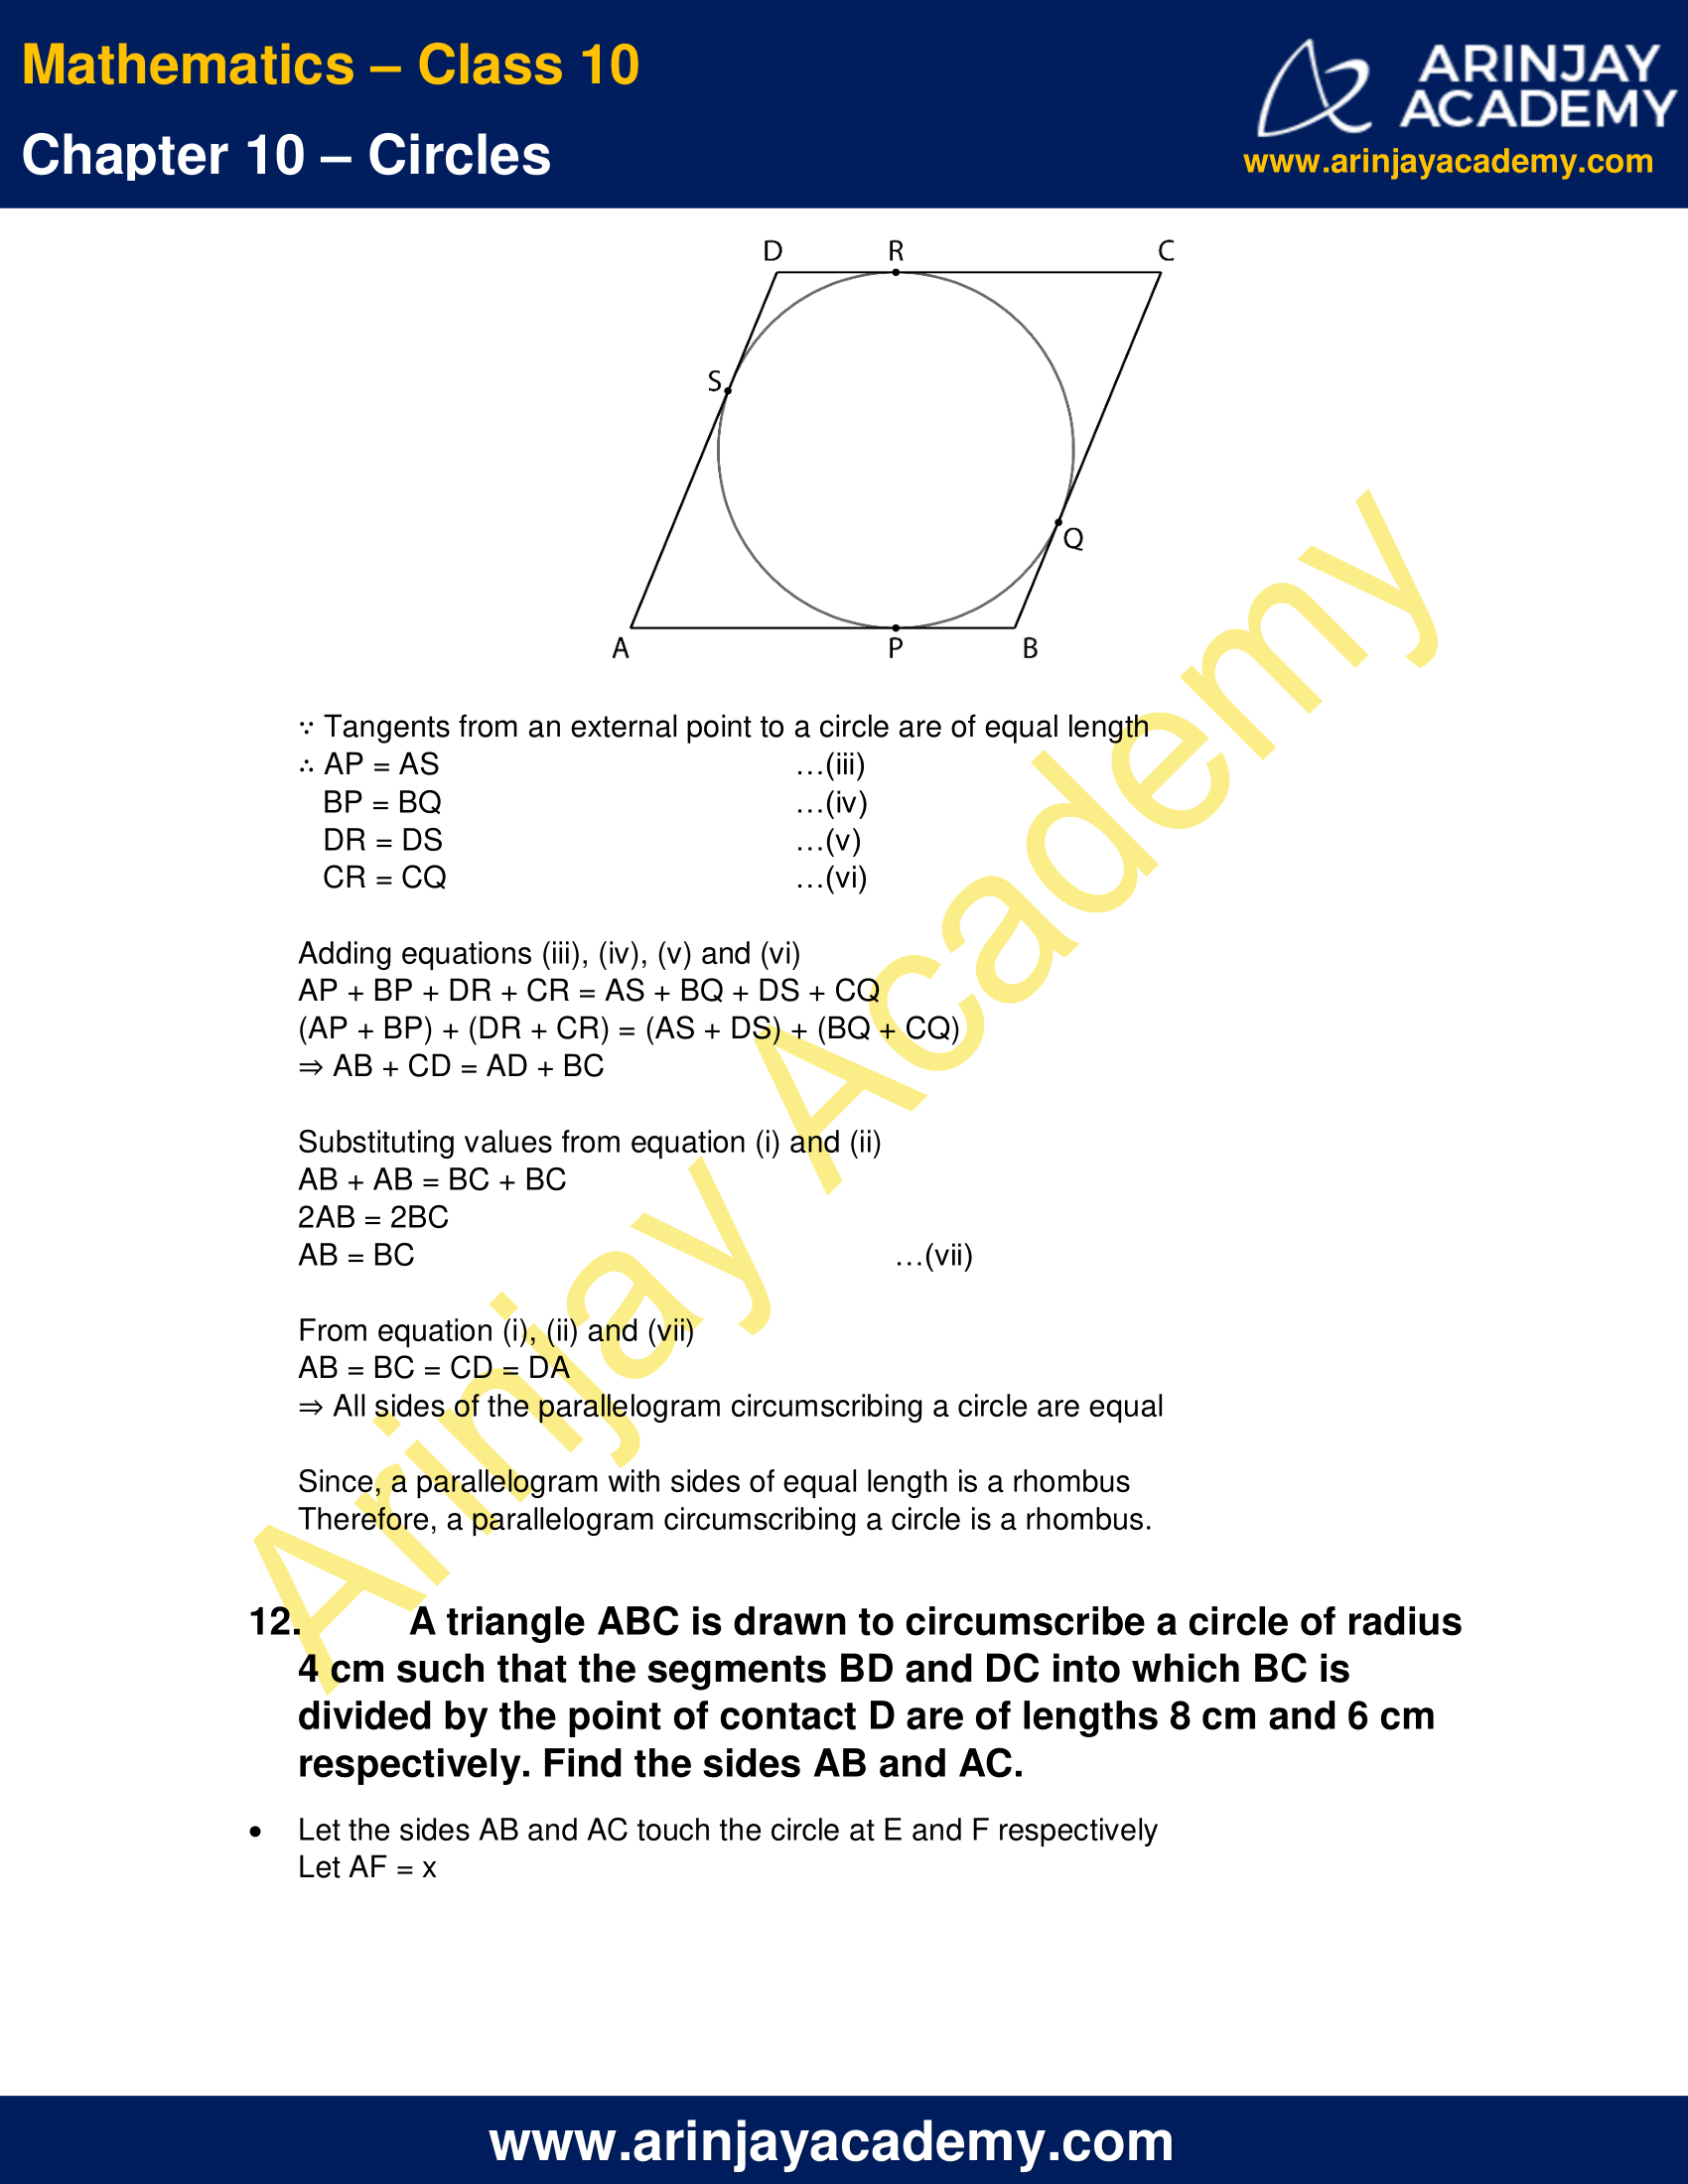 NCERT Solutions For Class 10 Maths Chapter 10 Exercise 10.2 image 10